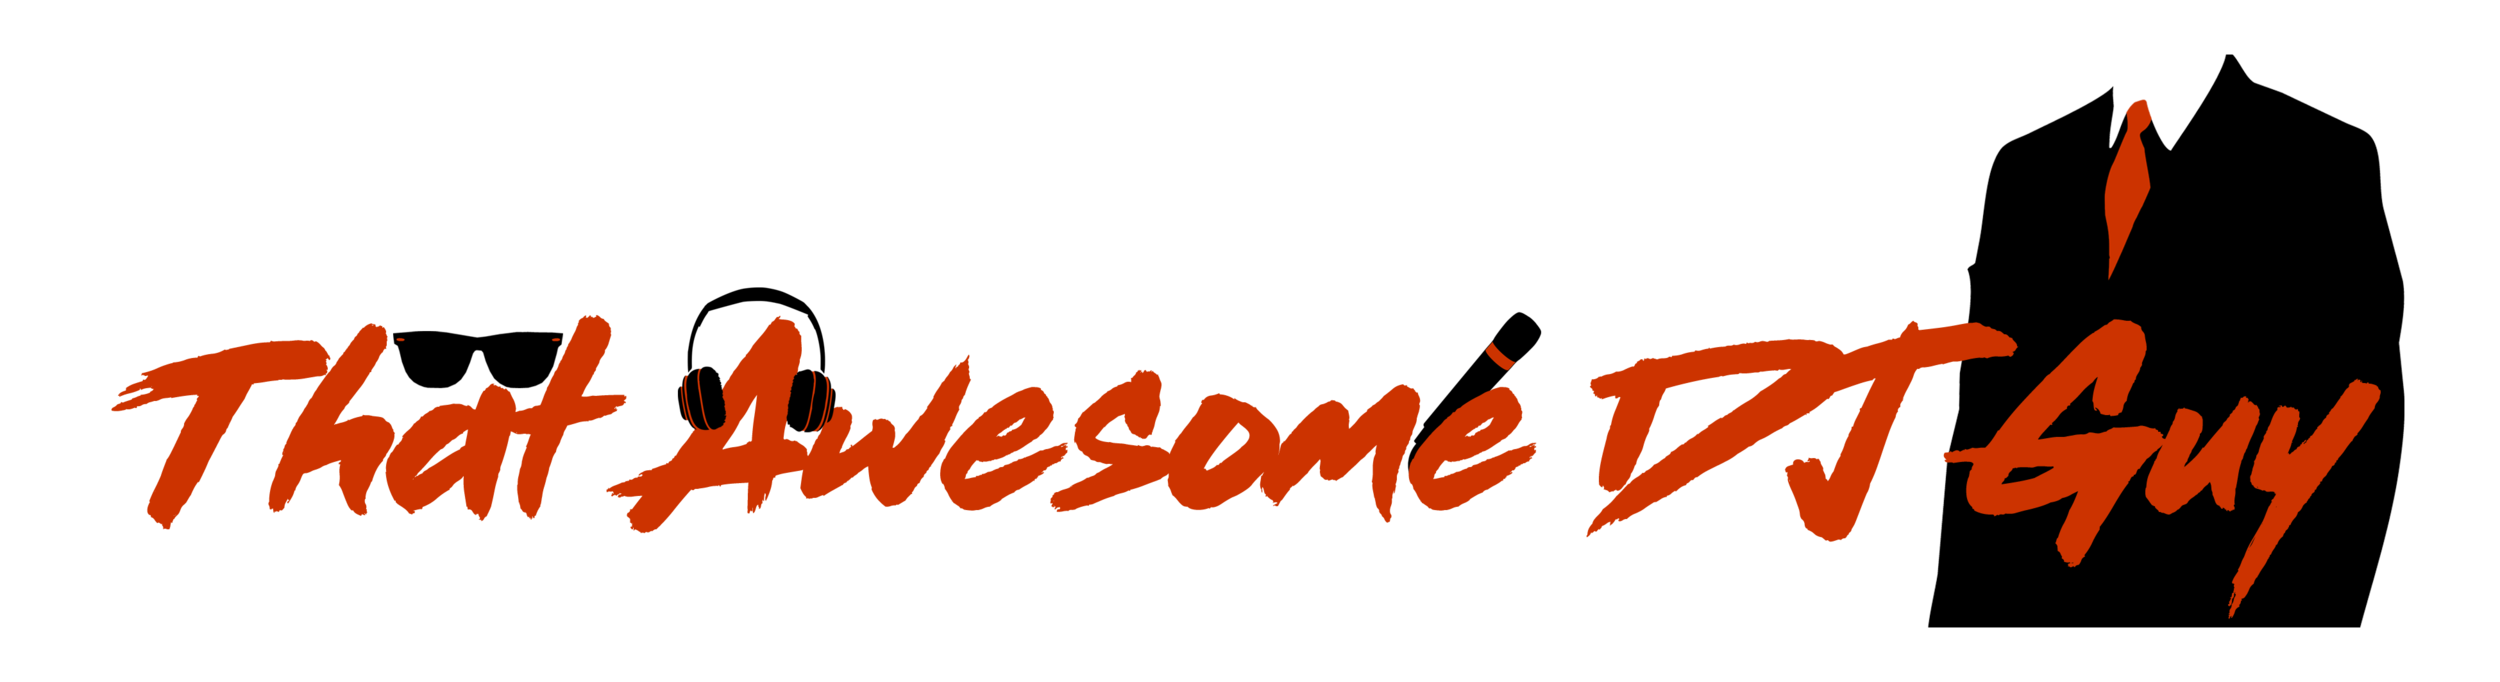 That Awesome DJ Guy logo